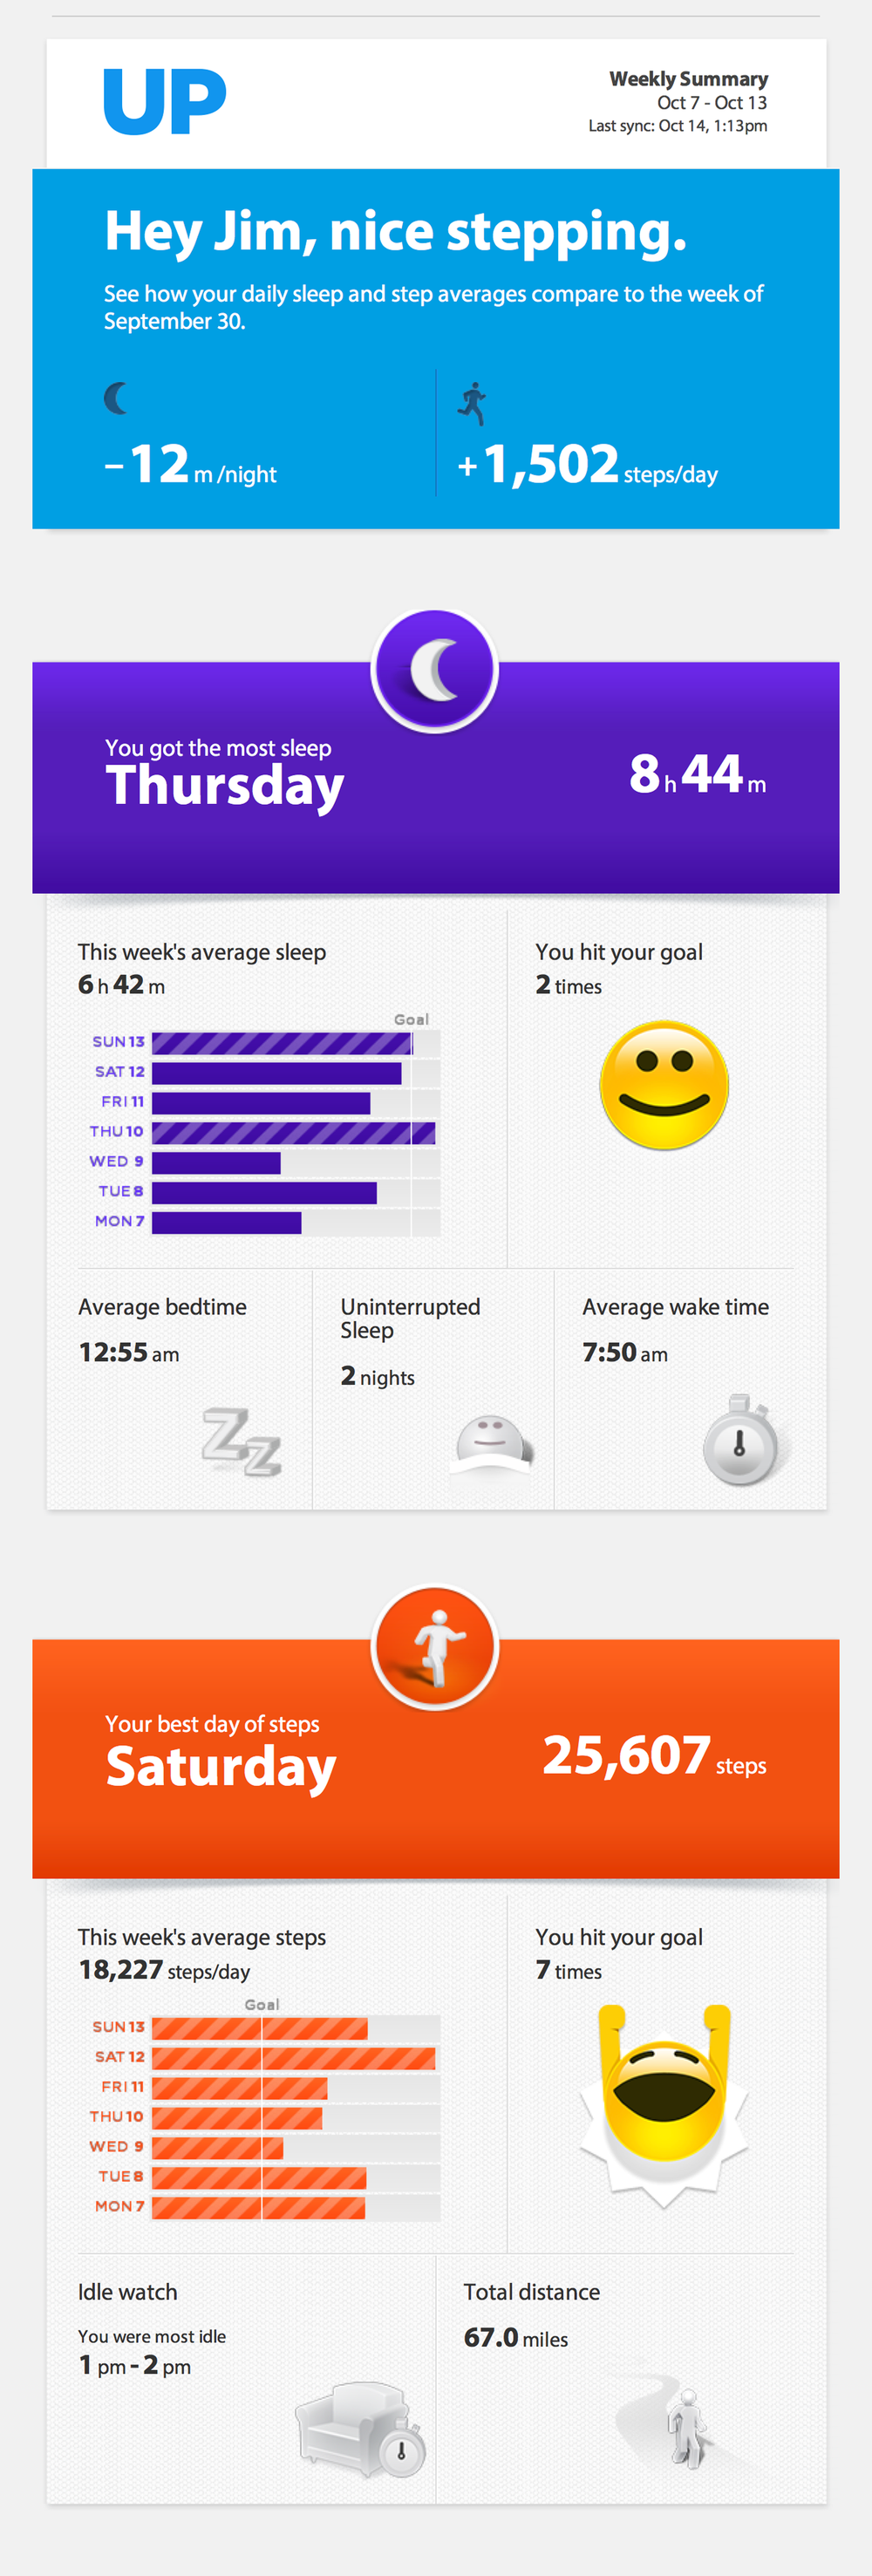 My Jawbone UP report for the week ending October 13, 2013.